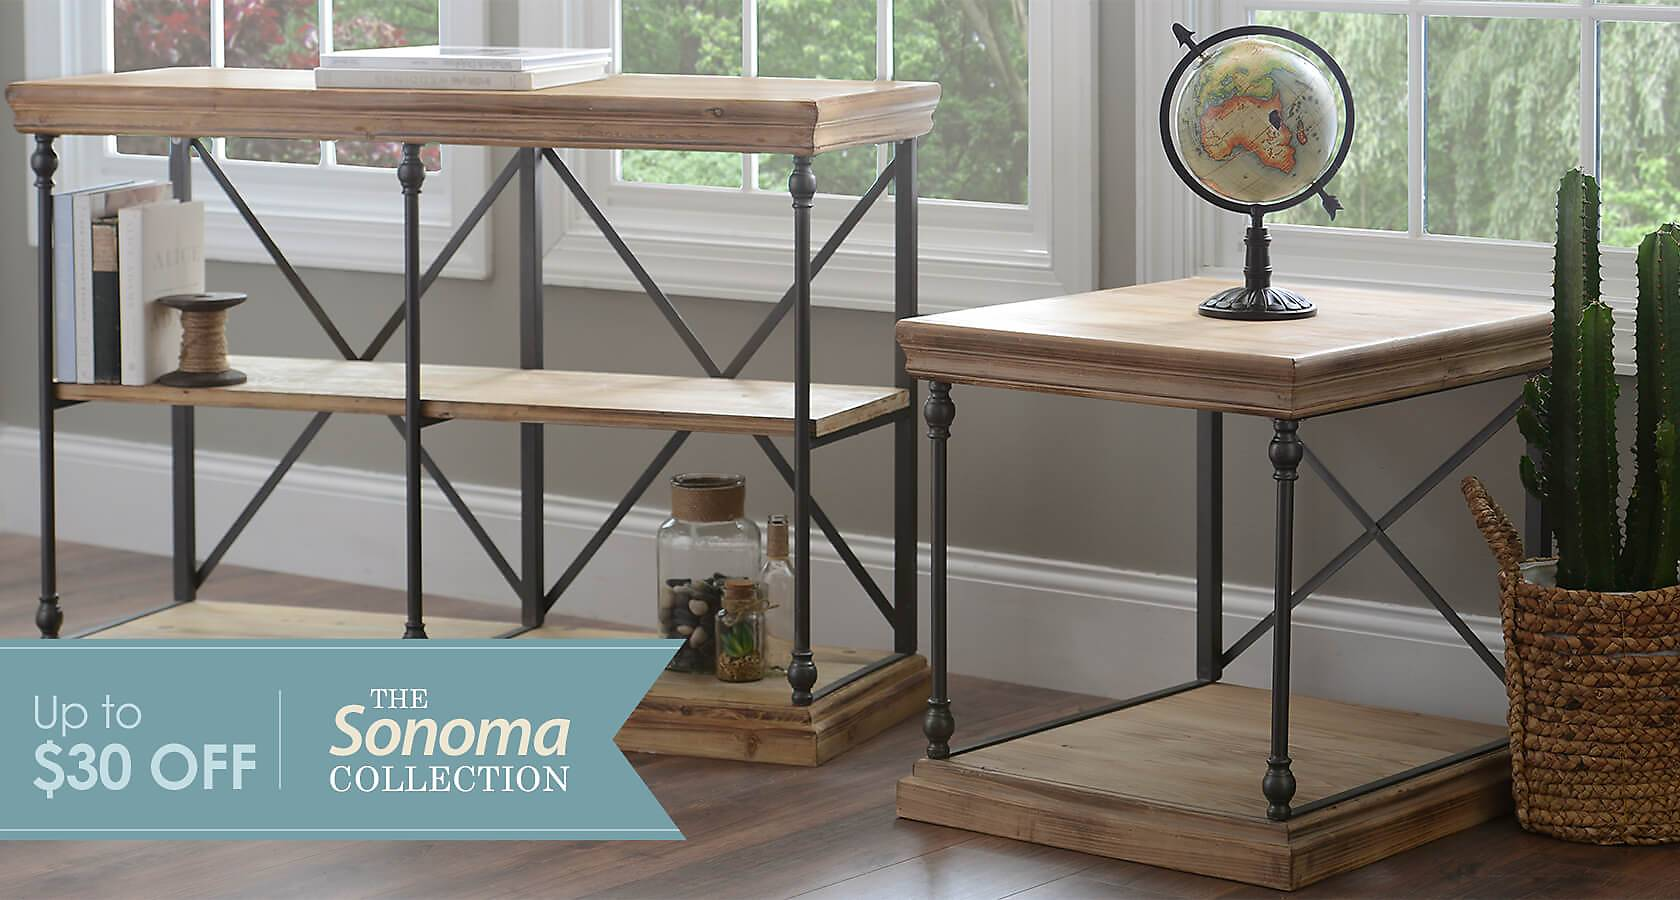 Sturdy and Stylish: The Sonoma Collection - Shop Now